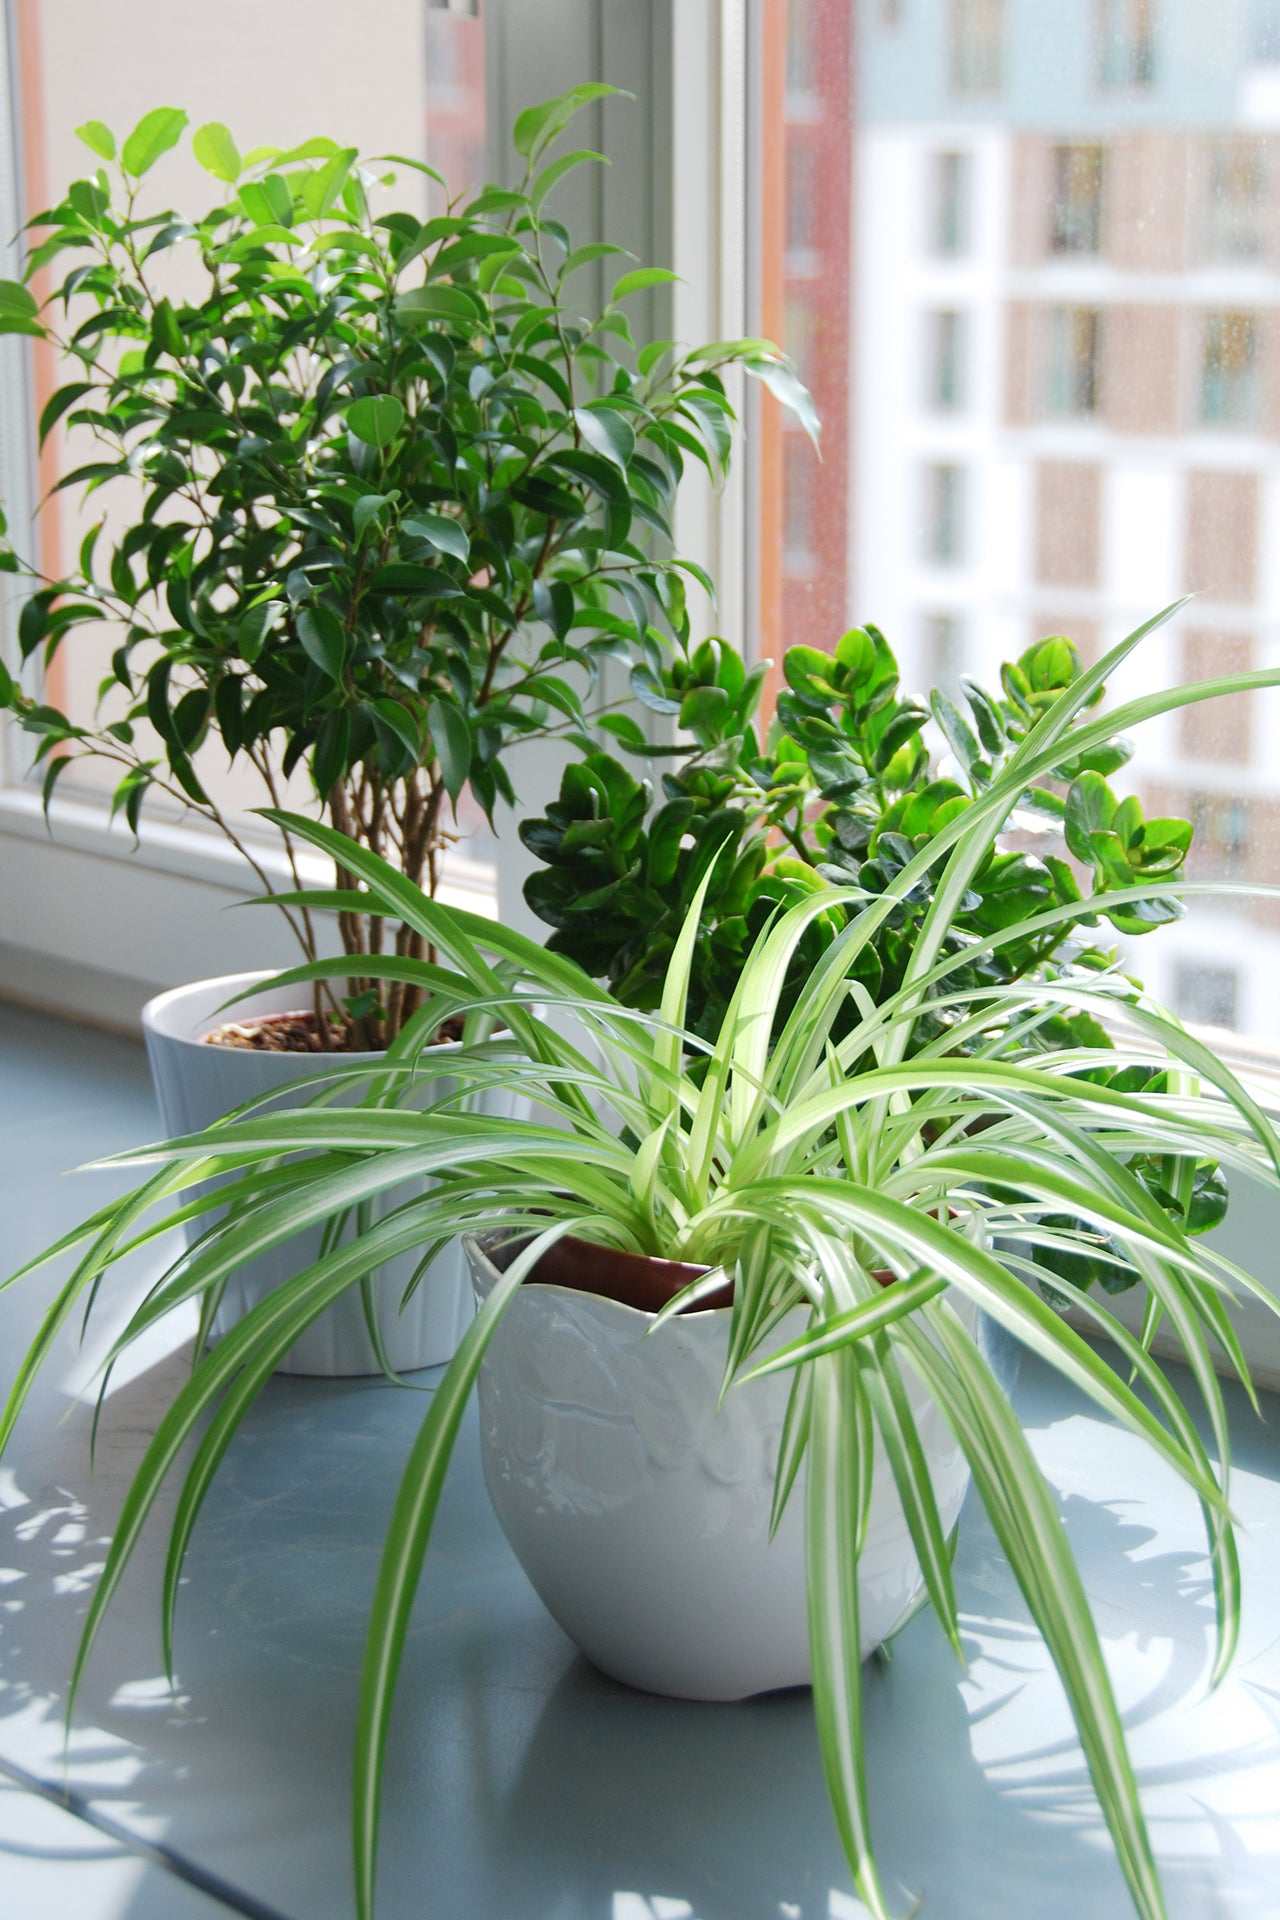 mold forming from indoor plants